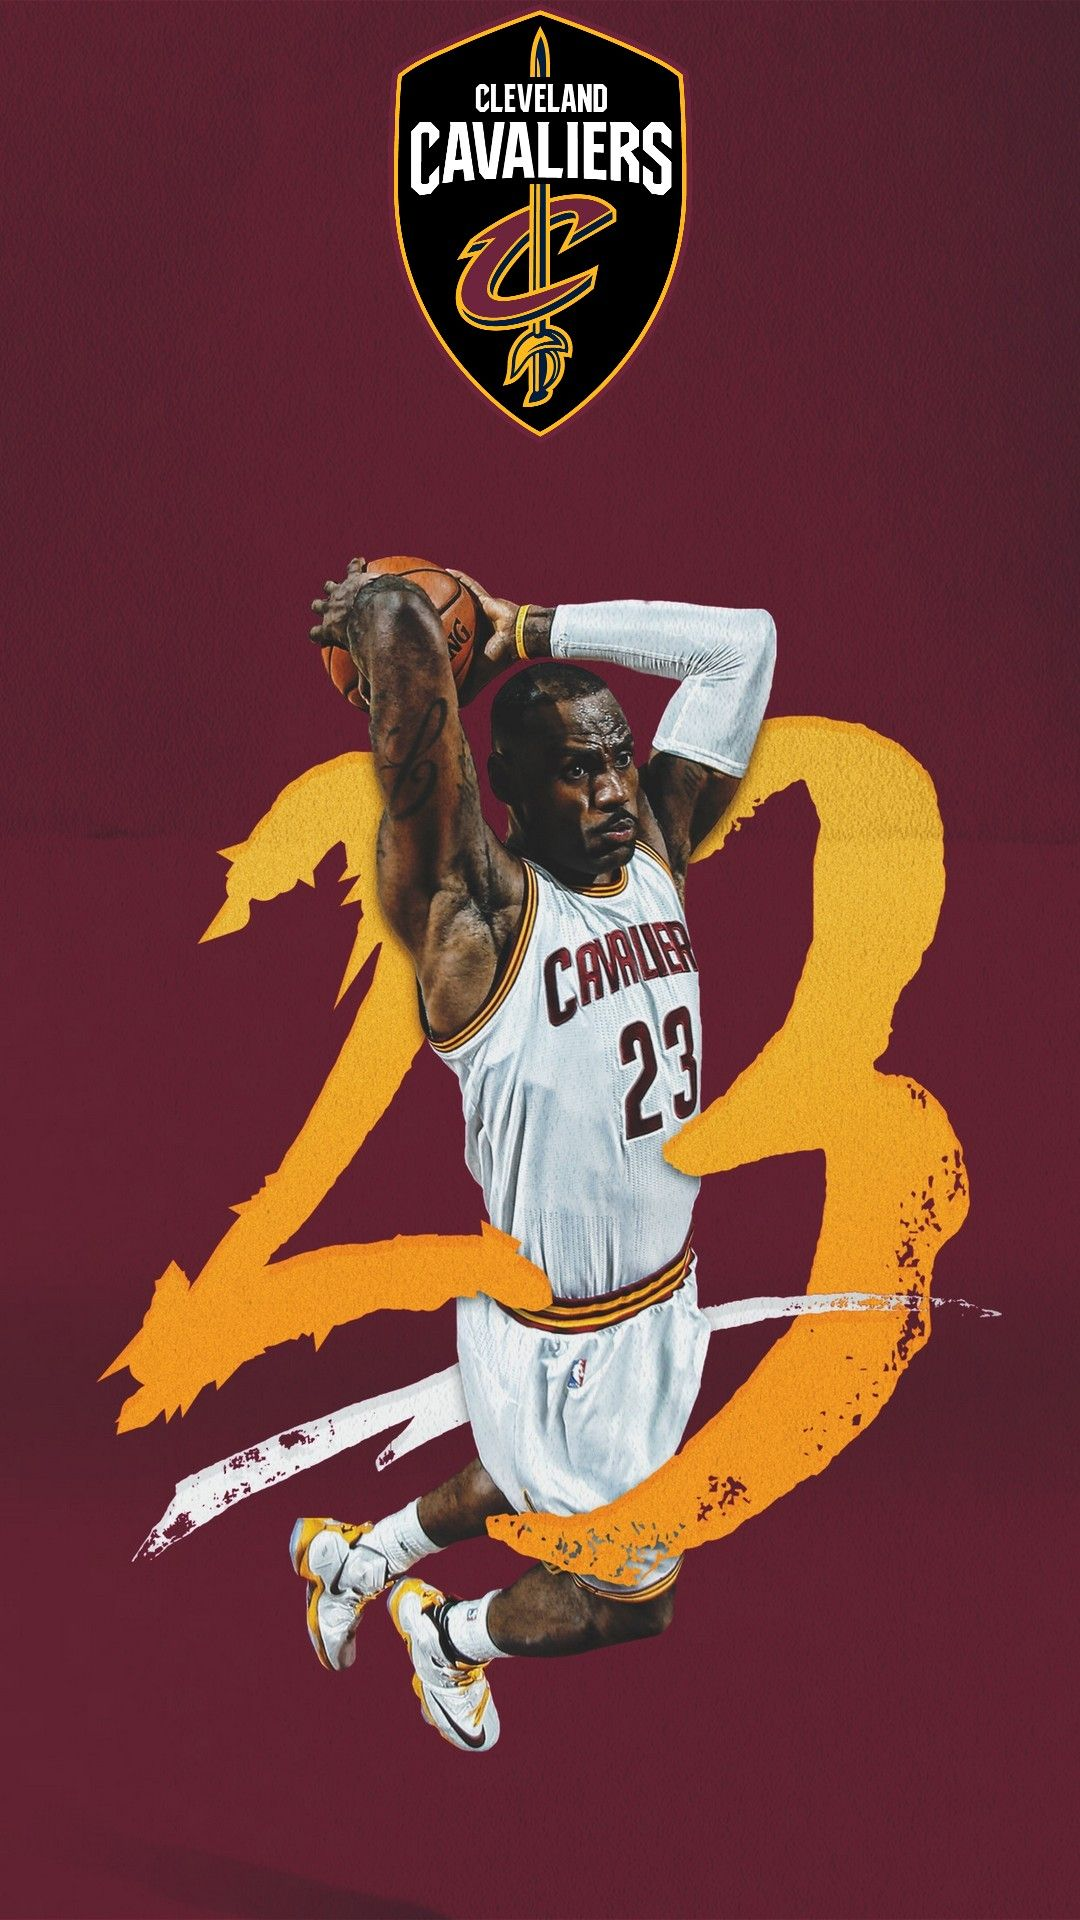 Basketball Wallpaper Best Basketball Wallpapers 2020 Lebron James Wallpapers Cavs Wallpaper Basketball Wallpaper